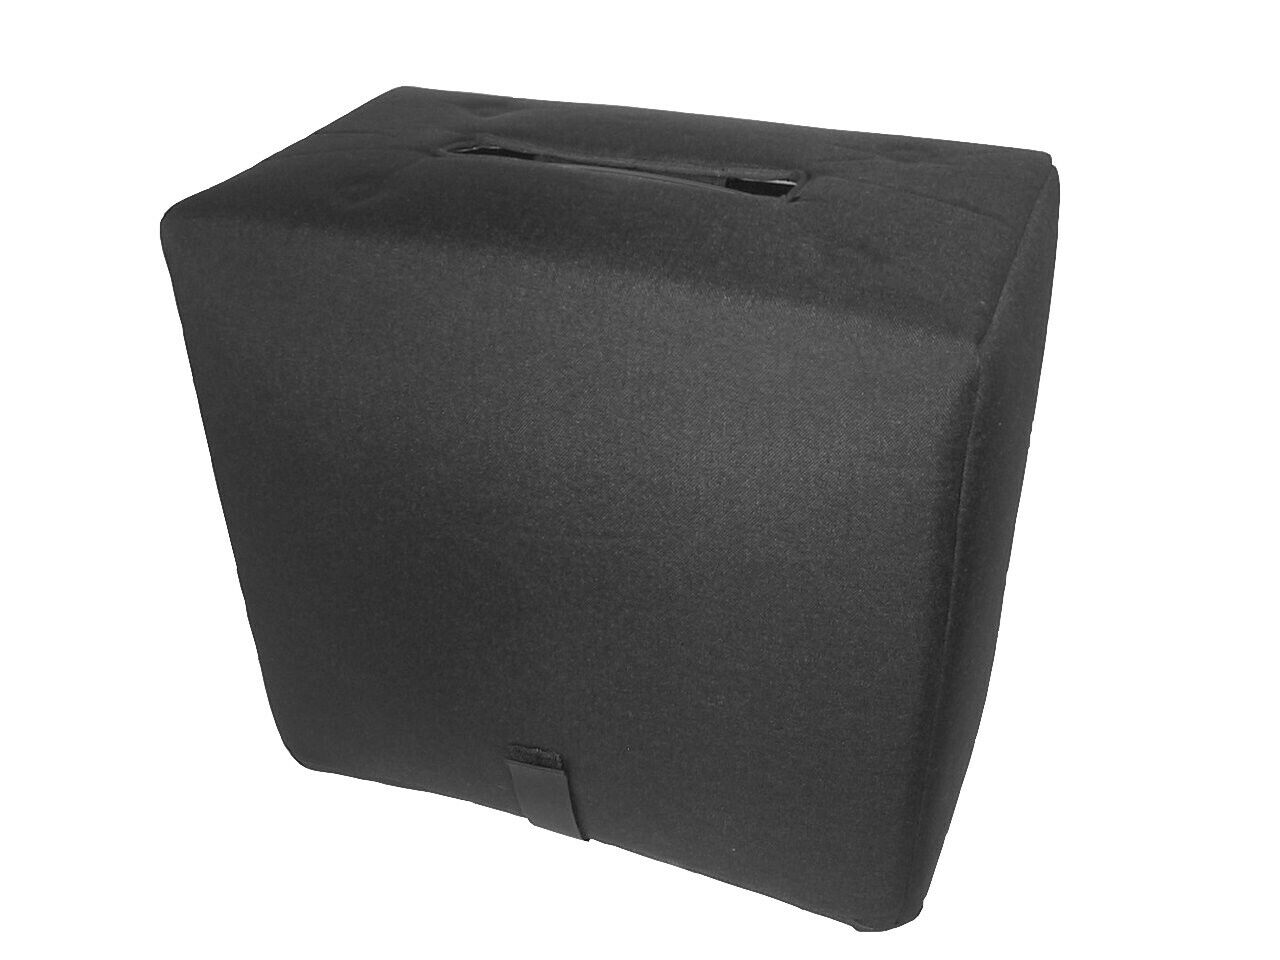 Ampeg Rocket R-12 Combo Amp Cover, schwarz, Water Resistant by Tuki (Ampe169p)